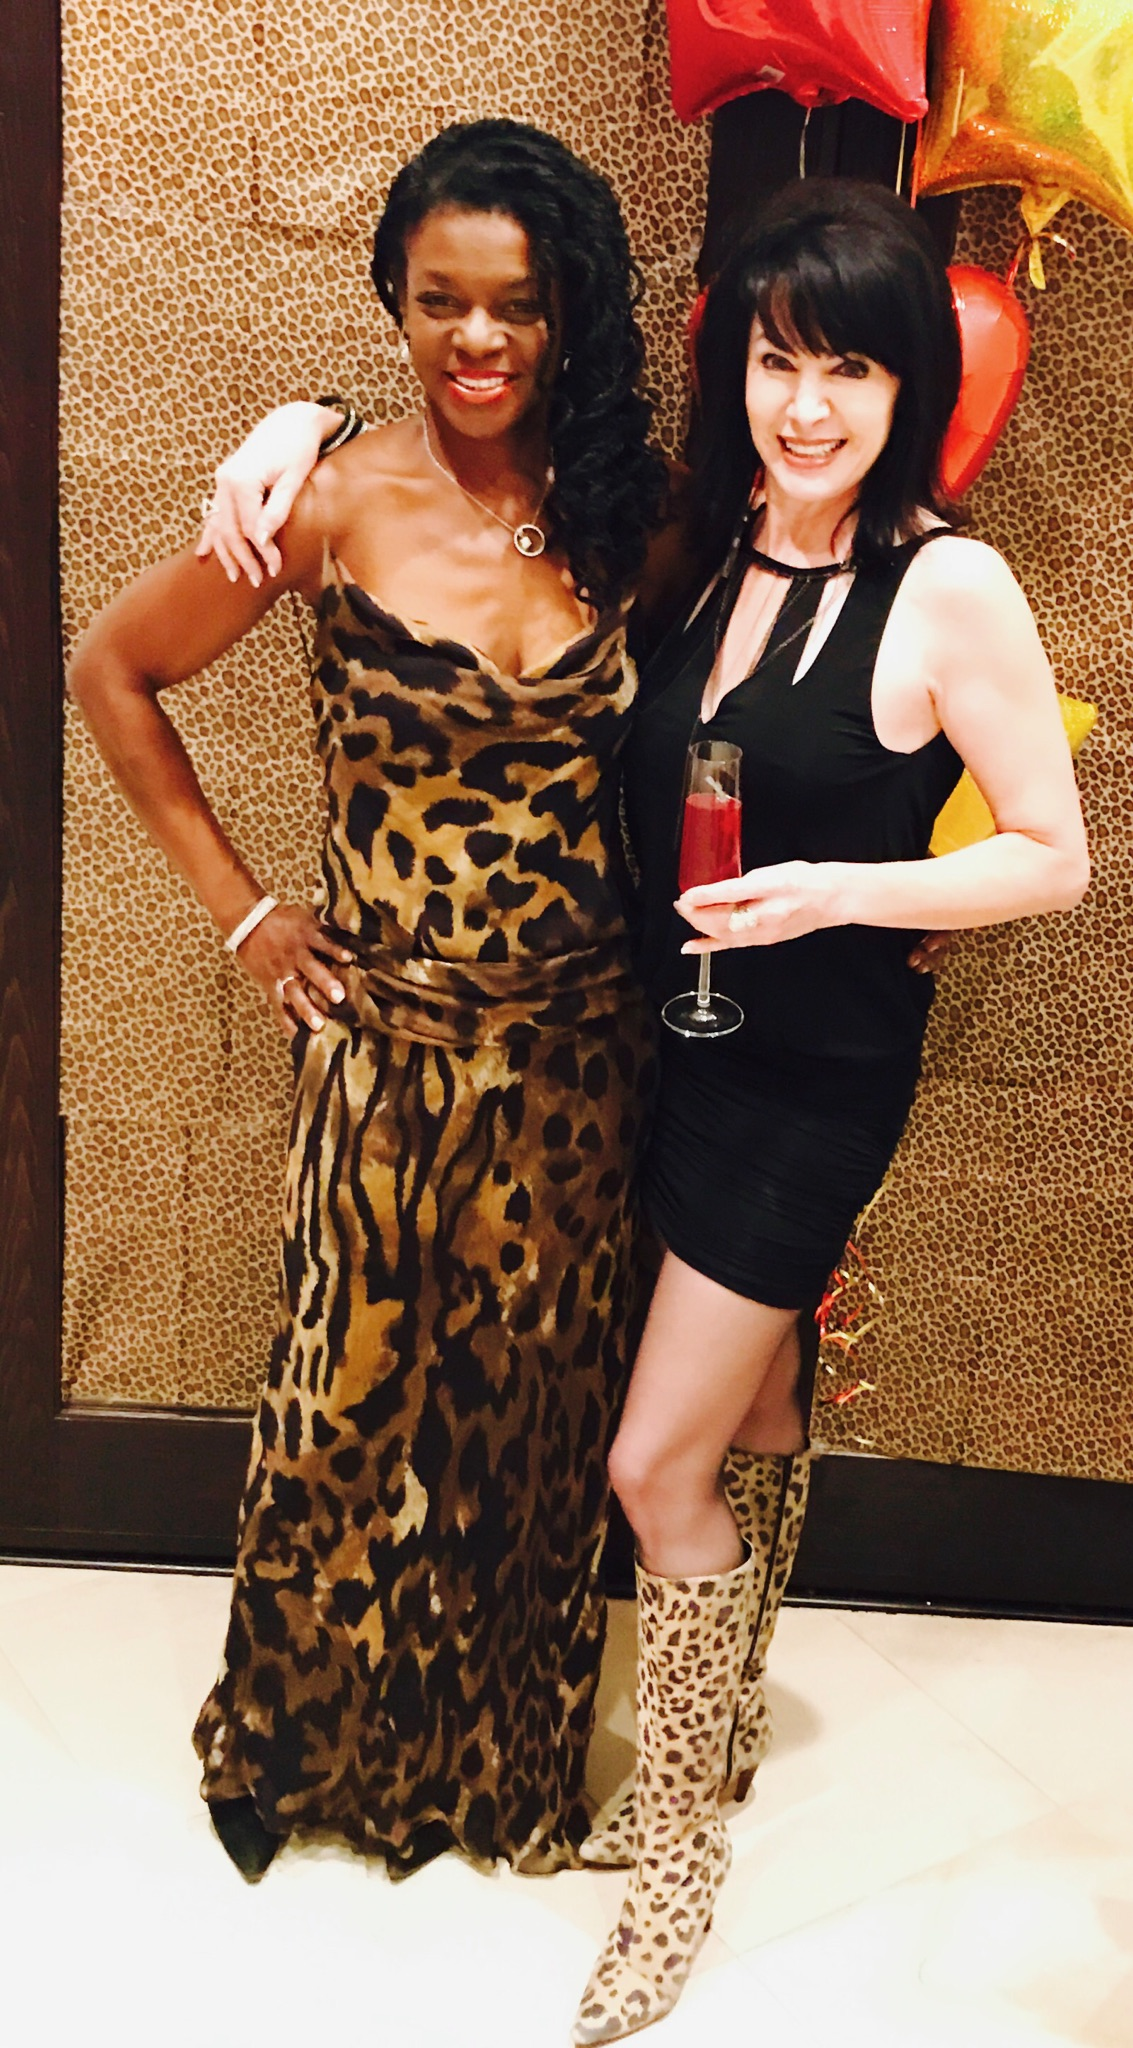 Robin and Michele looking fab!!